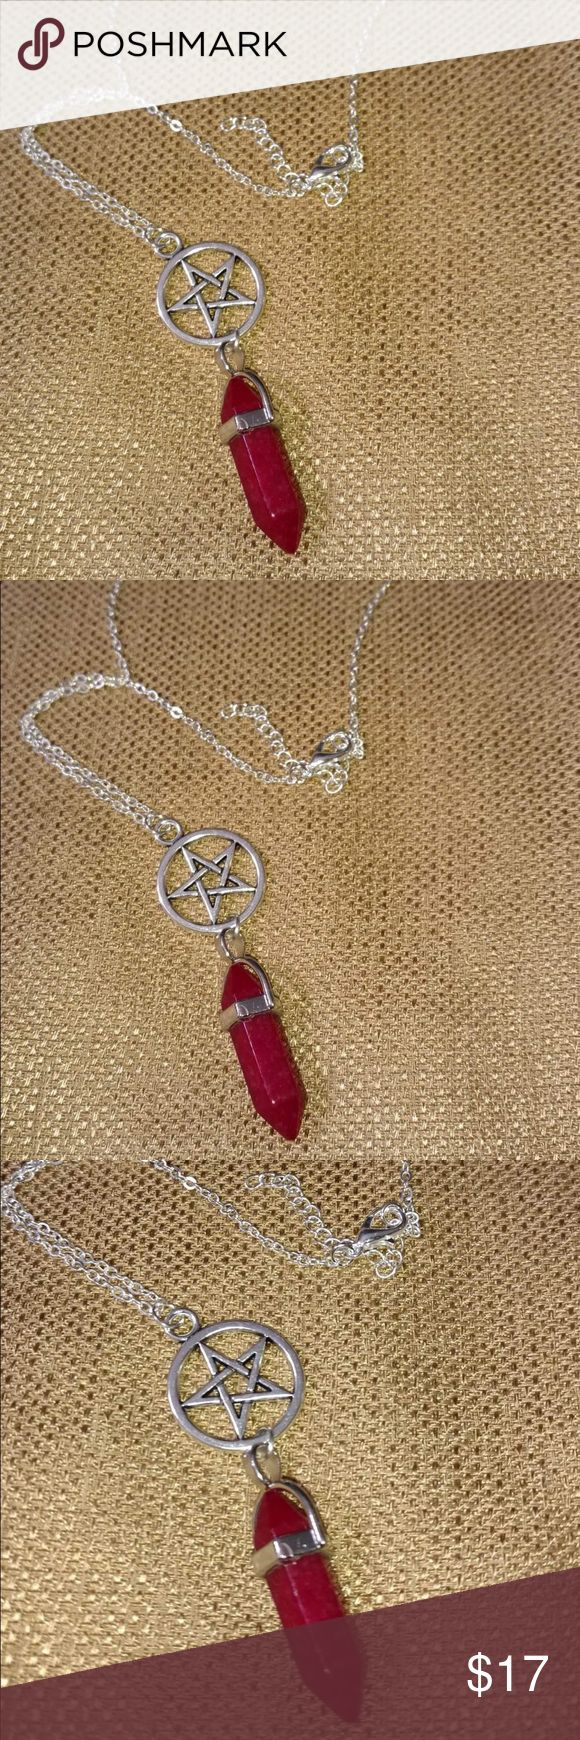 Natural Red Agate Crystal Pentagon Necklace Beautiful Natural Red Agate Crystal Hexagonal Column  Pentagon Necklace Jewelry Necklaces